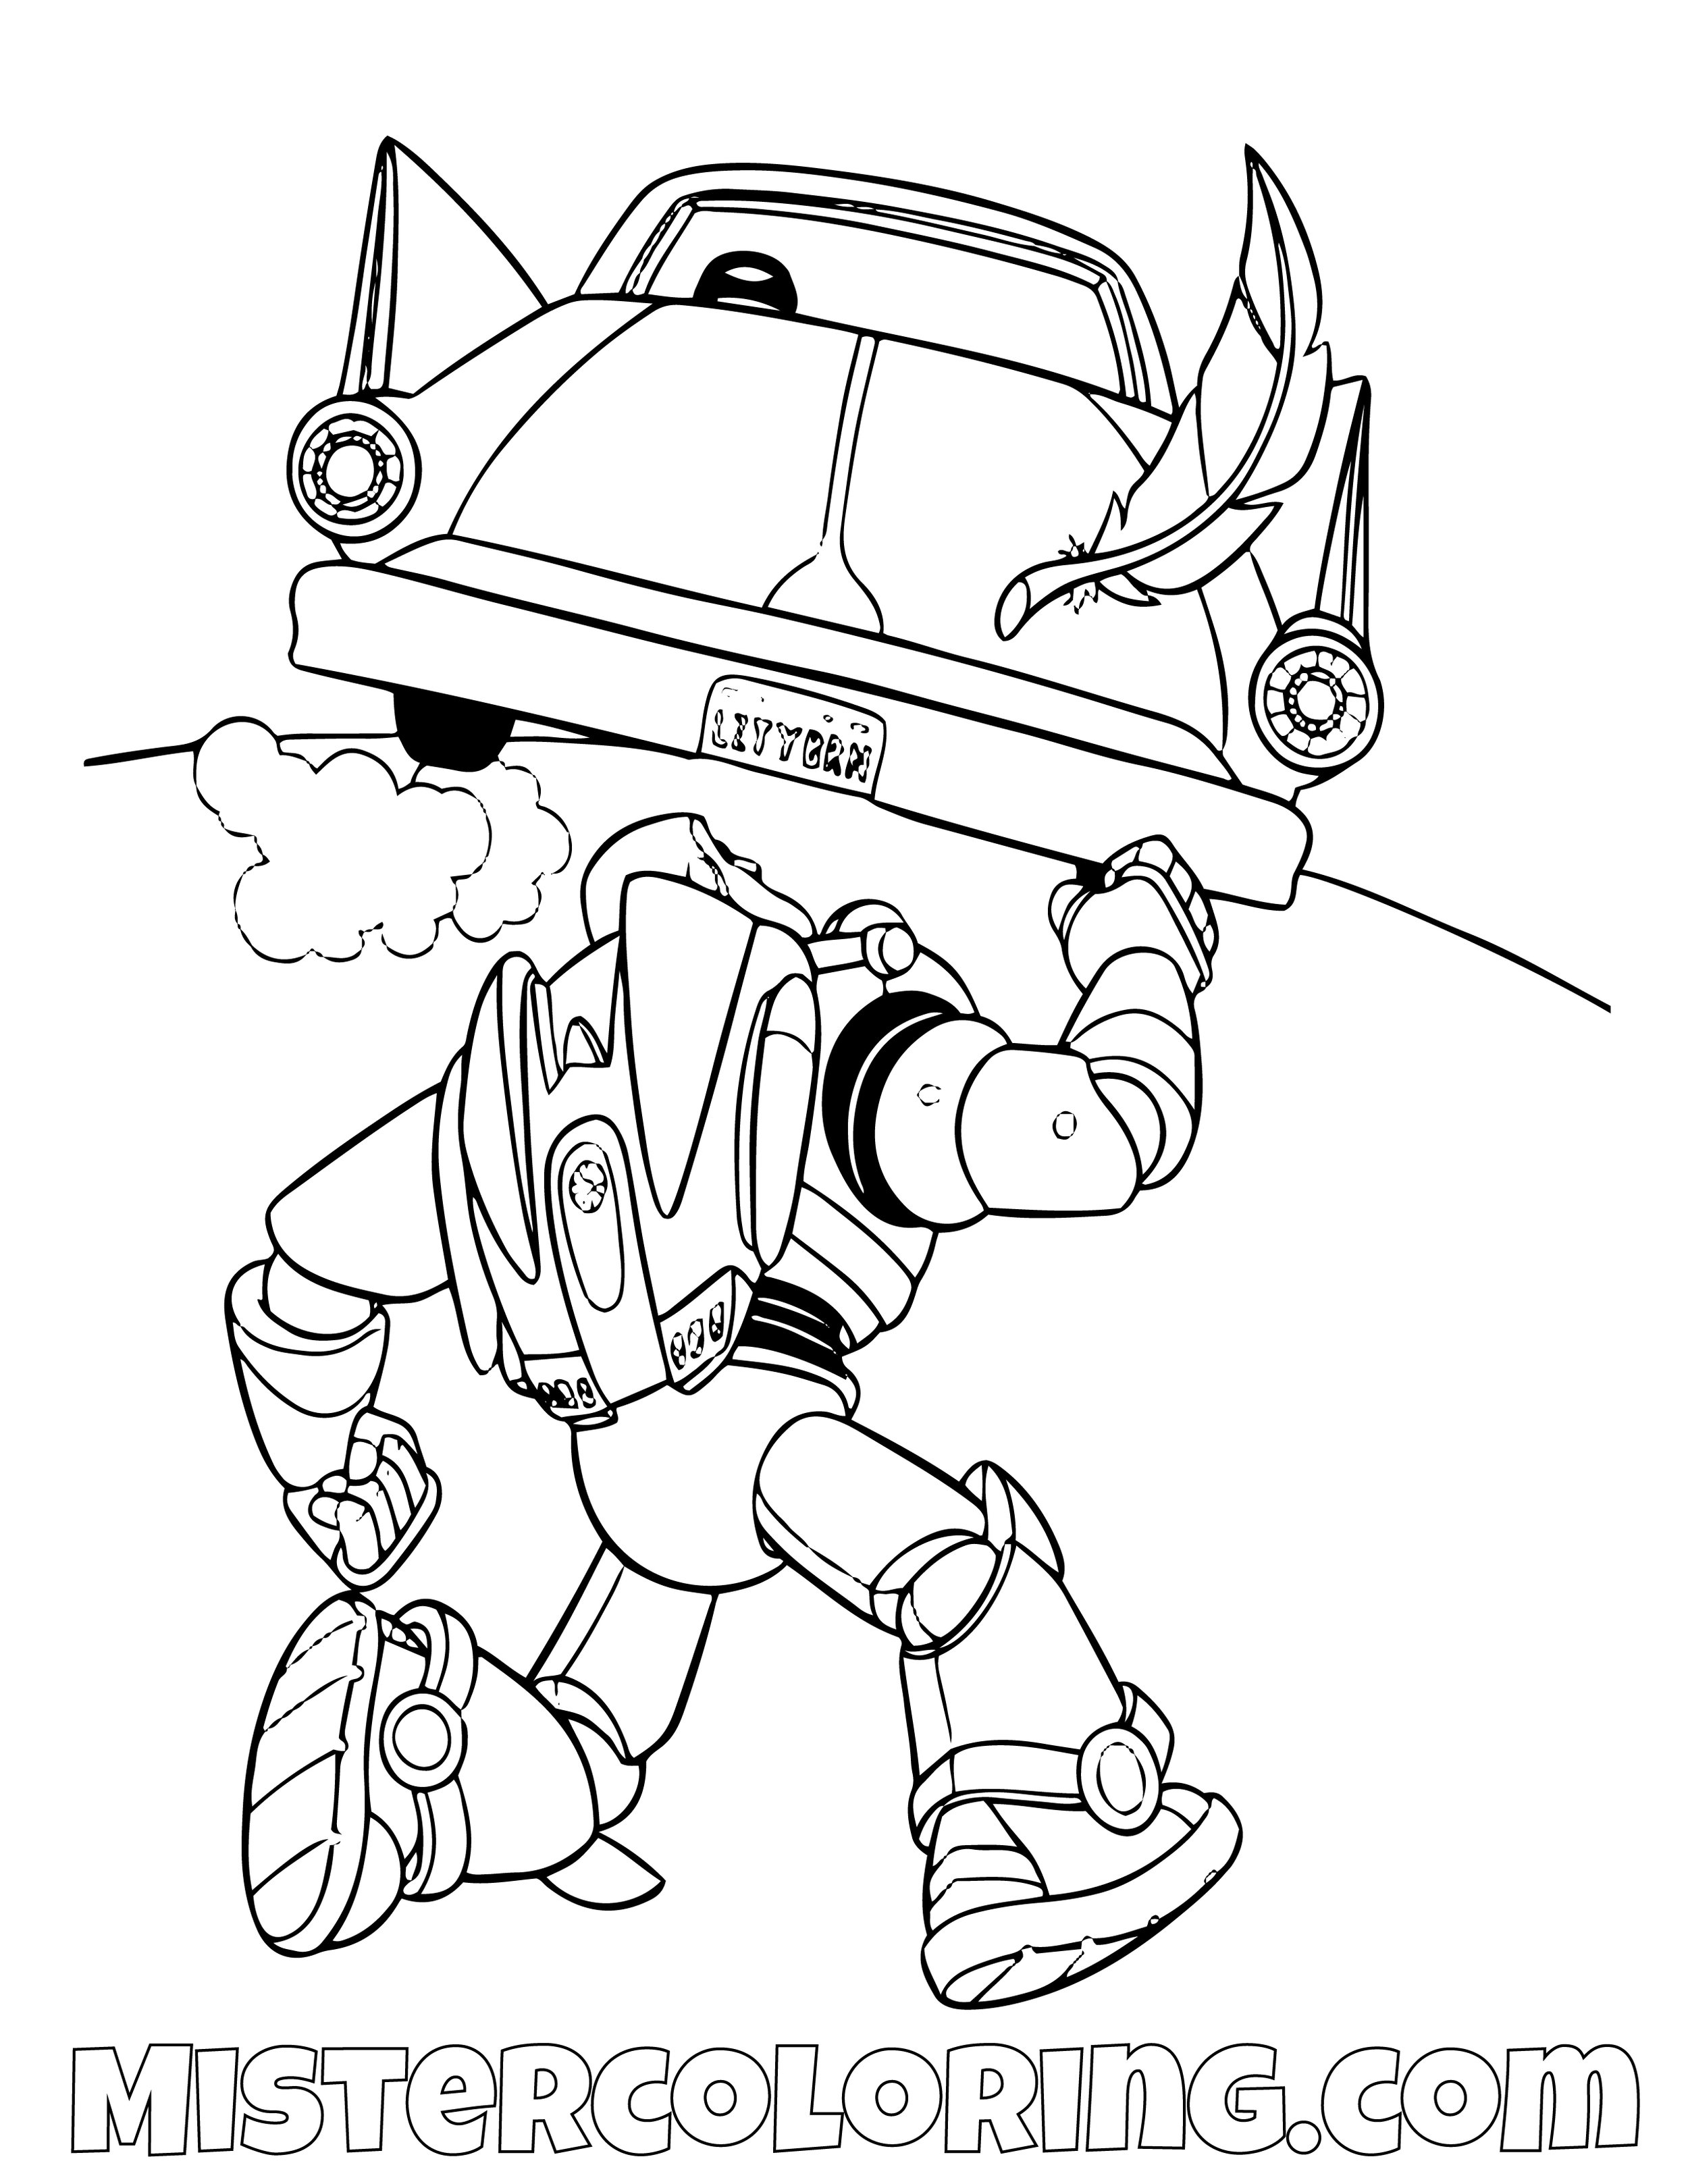 Buzz Lightyear Following A Car Toy Story Coloring Page